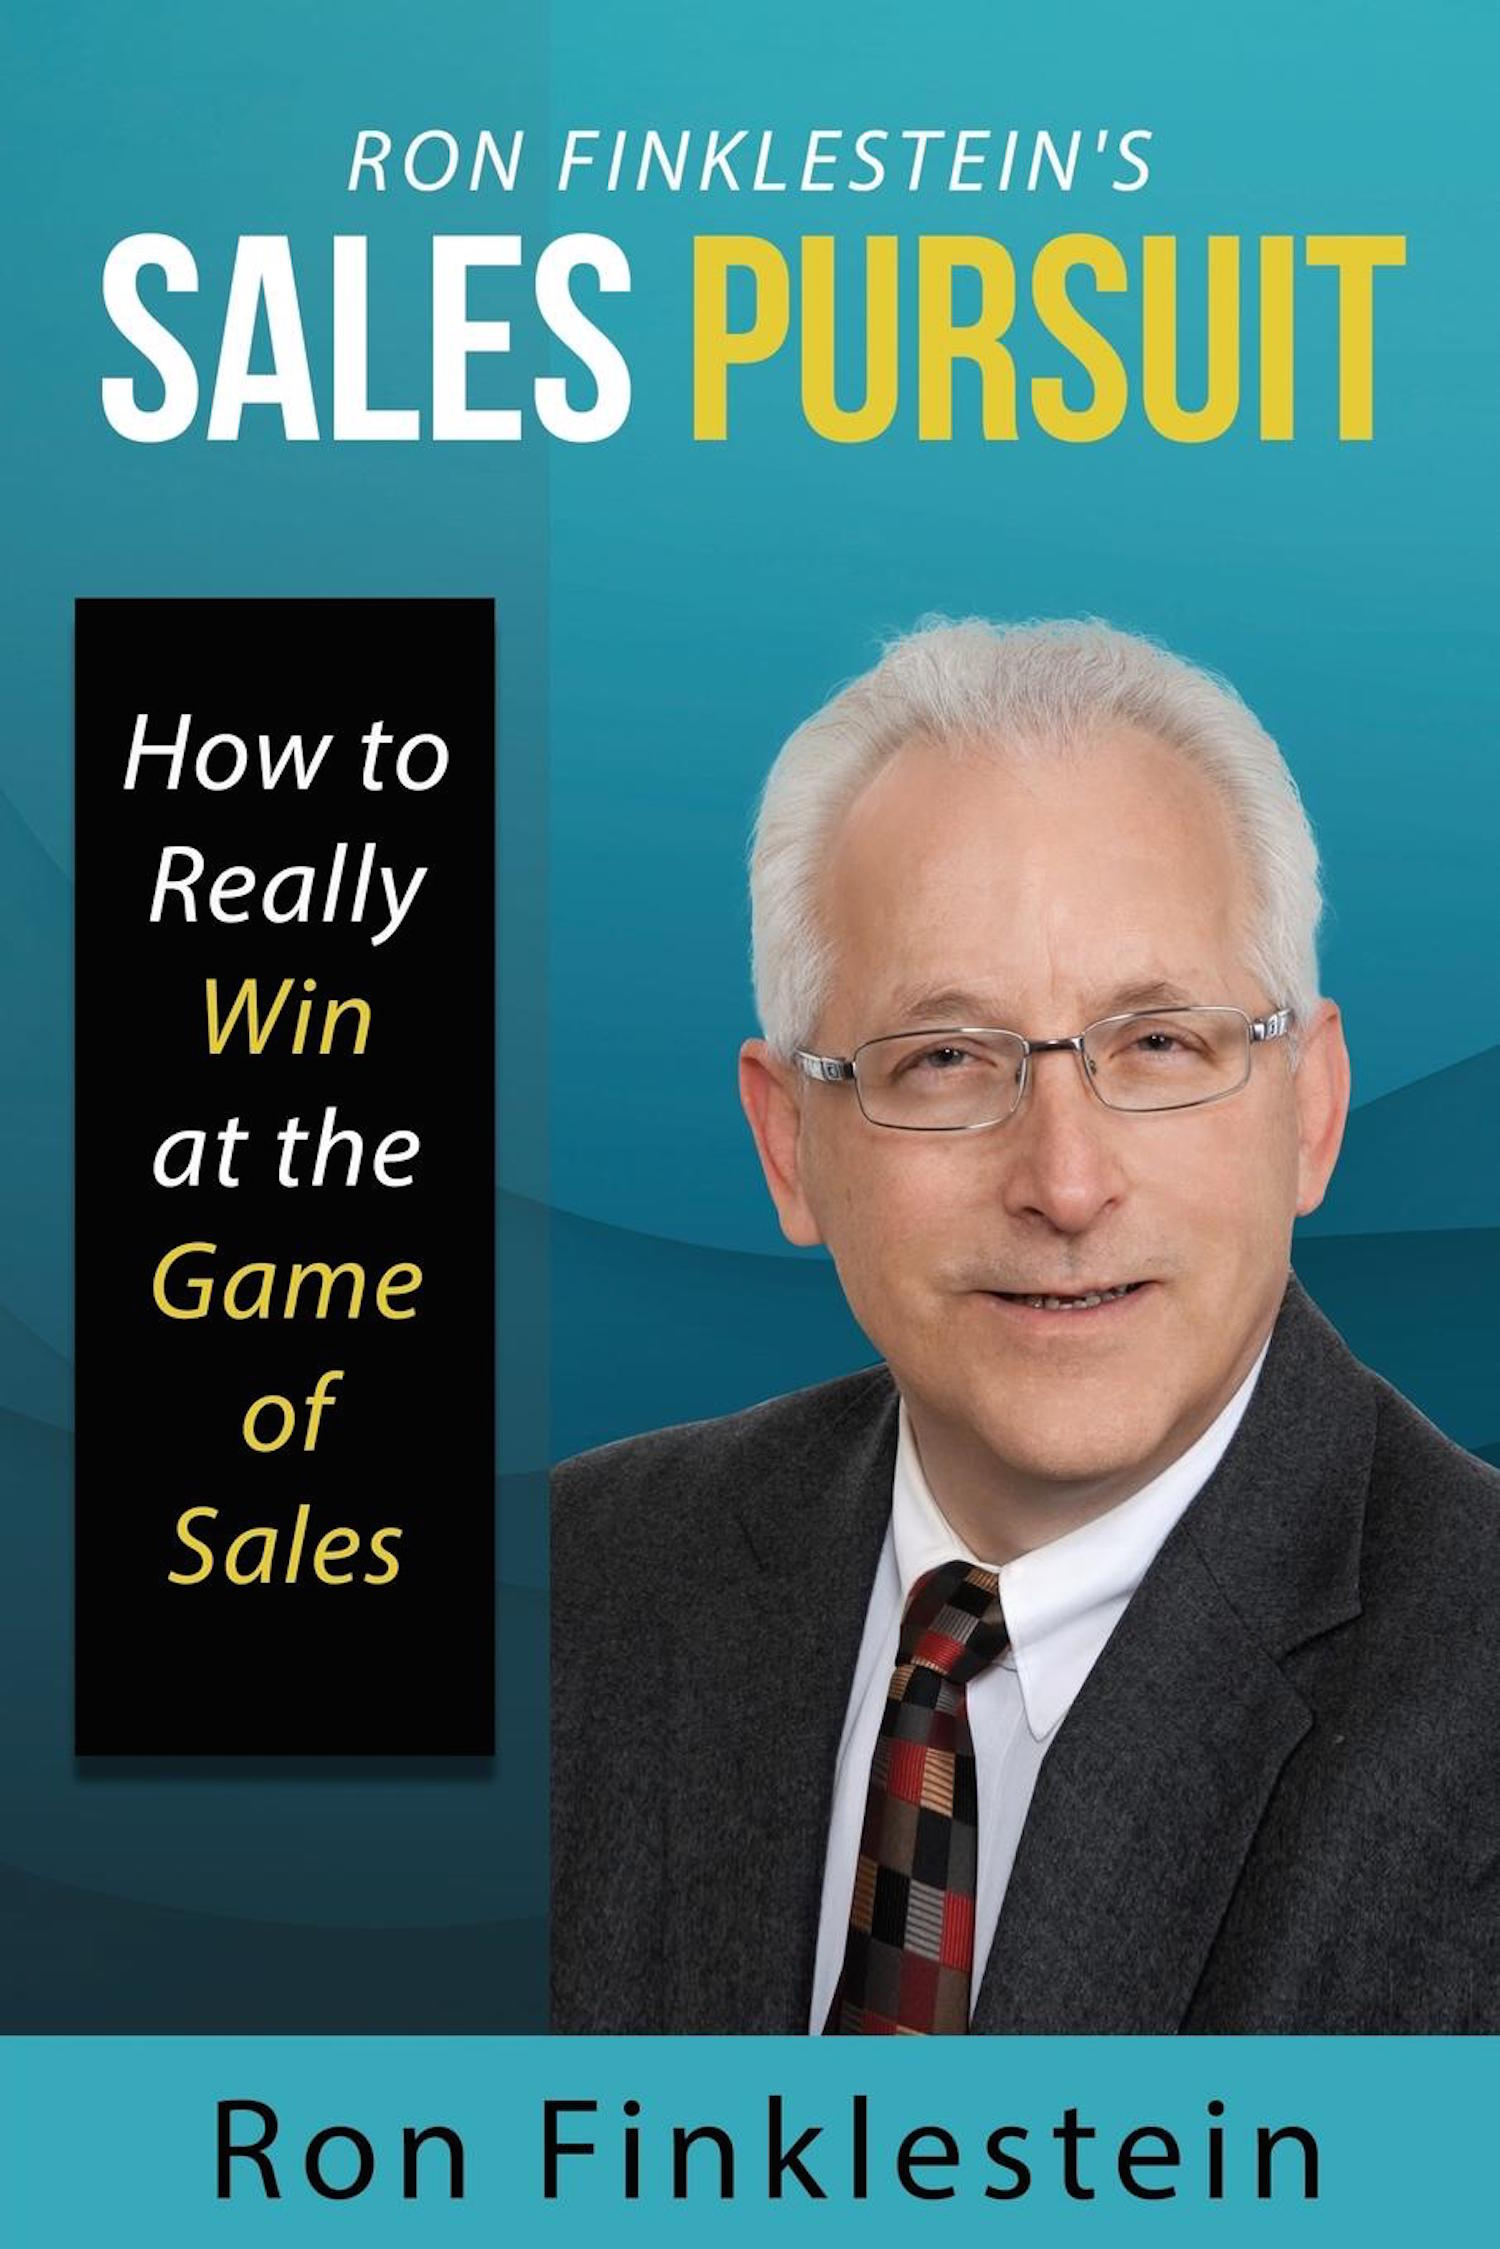 Ron Finklestein's Sales Pursuit